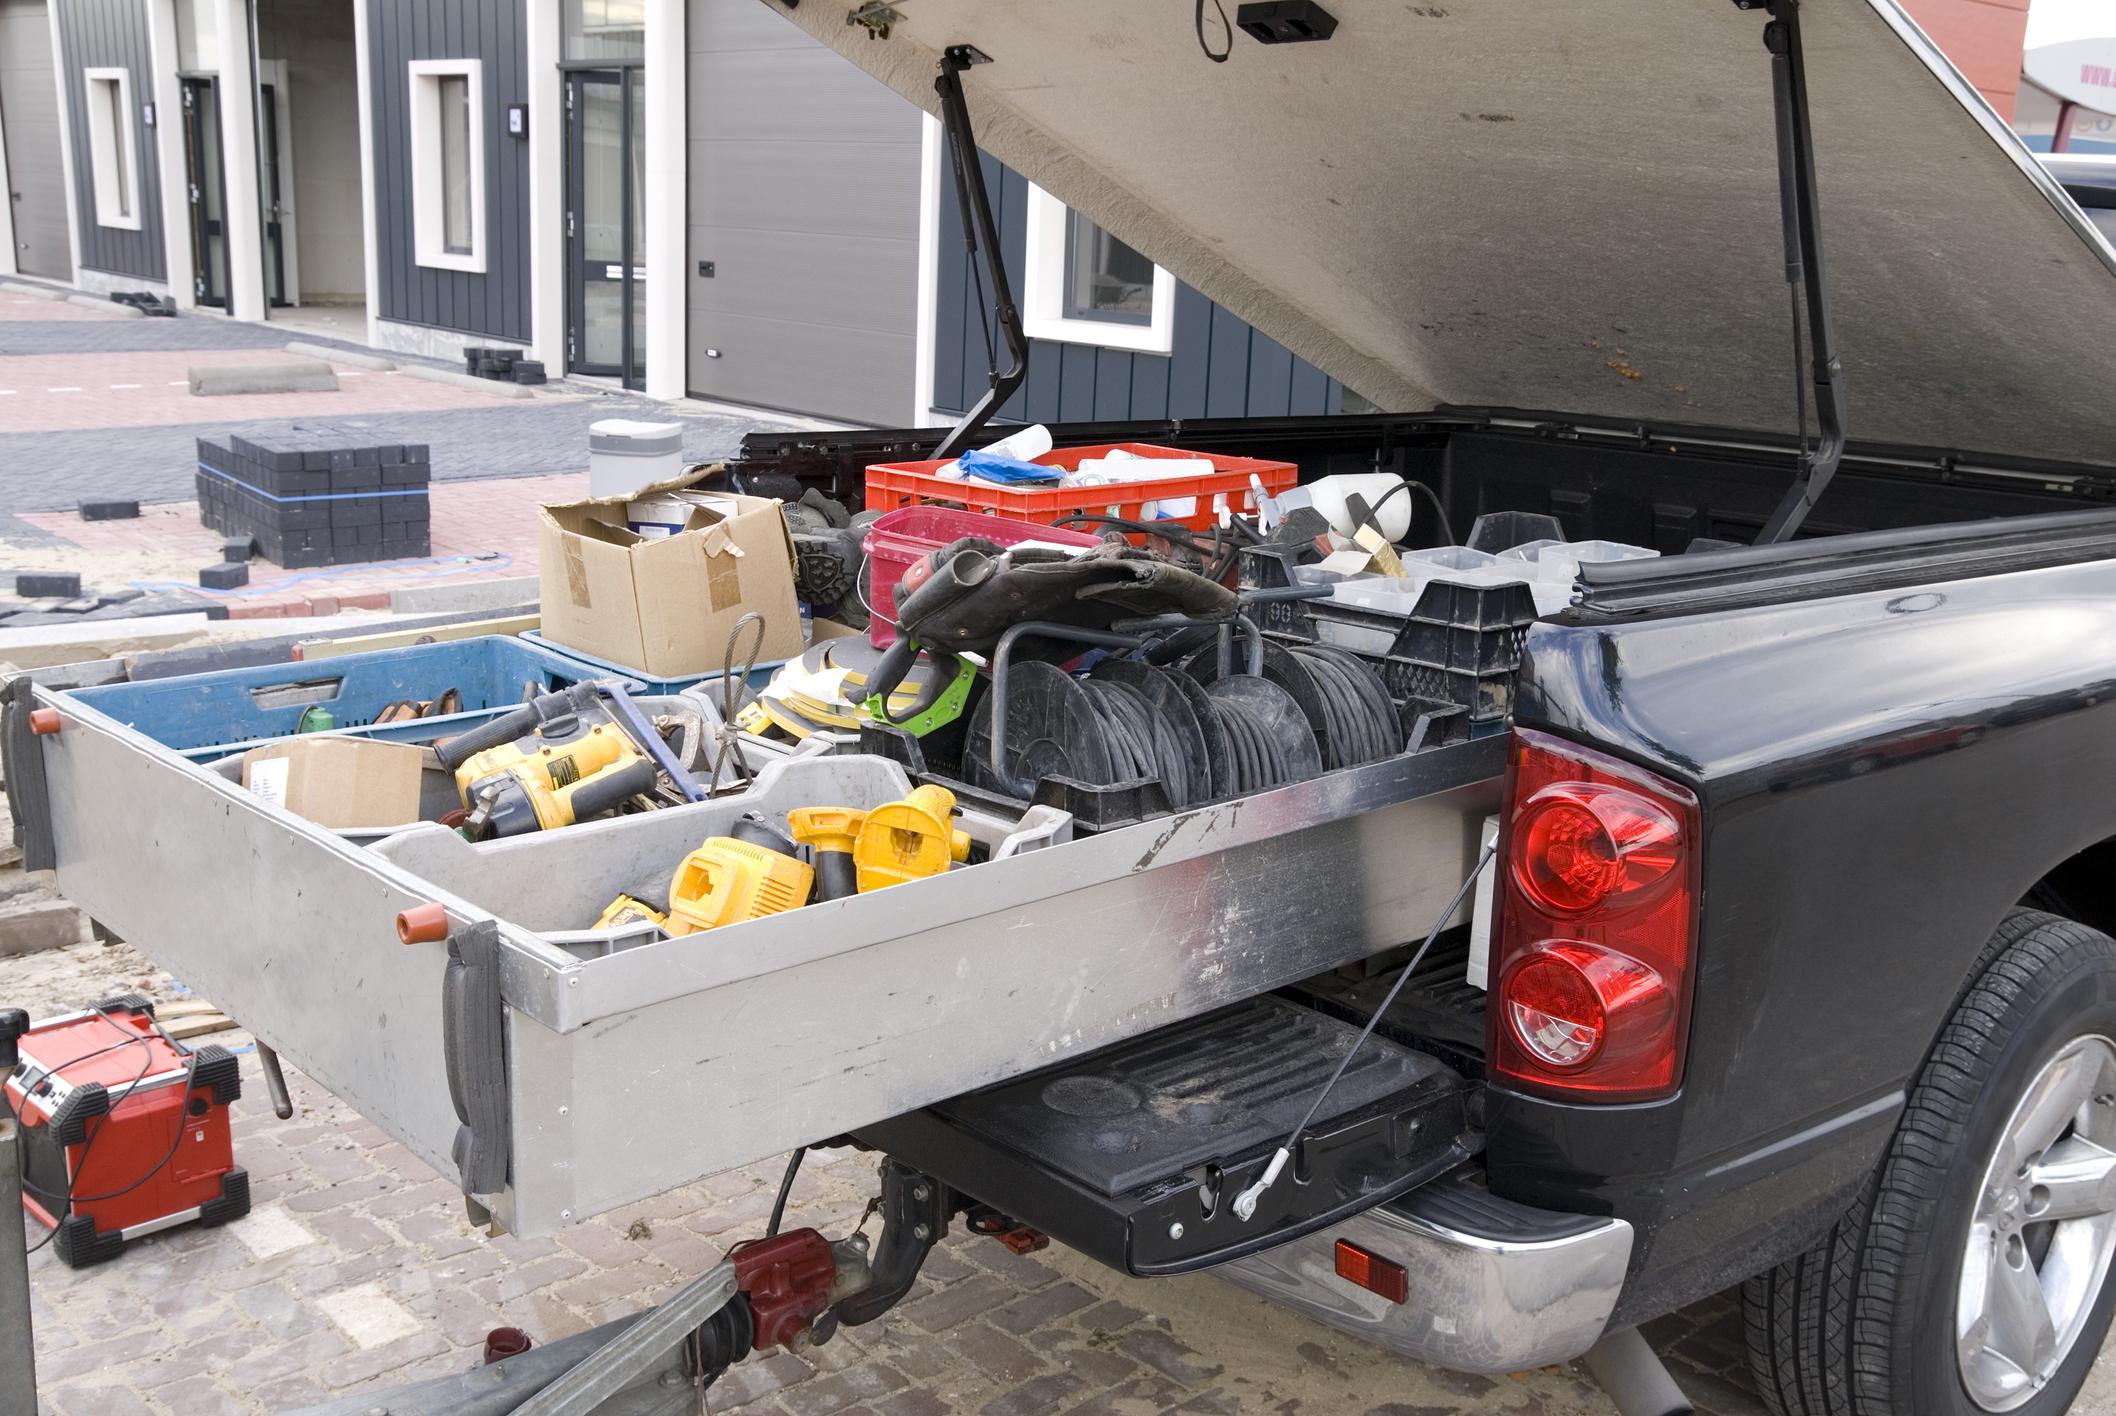 Pick-up truck of a construction worker with a trunk full of tools.